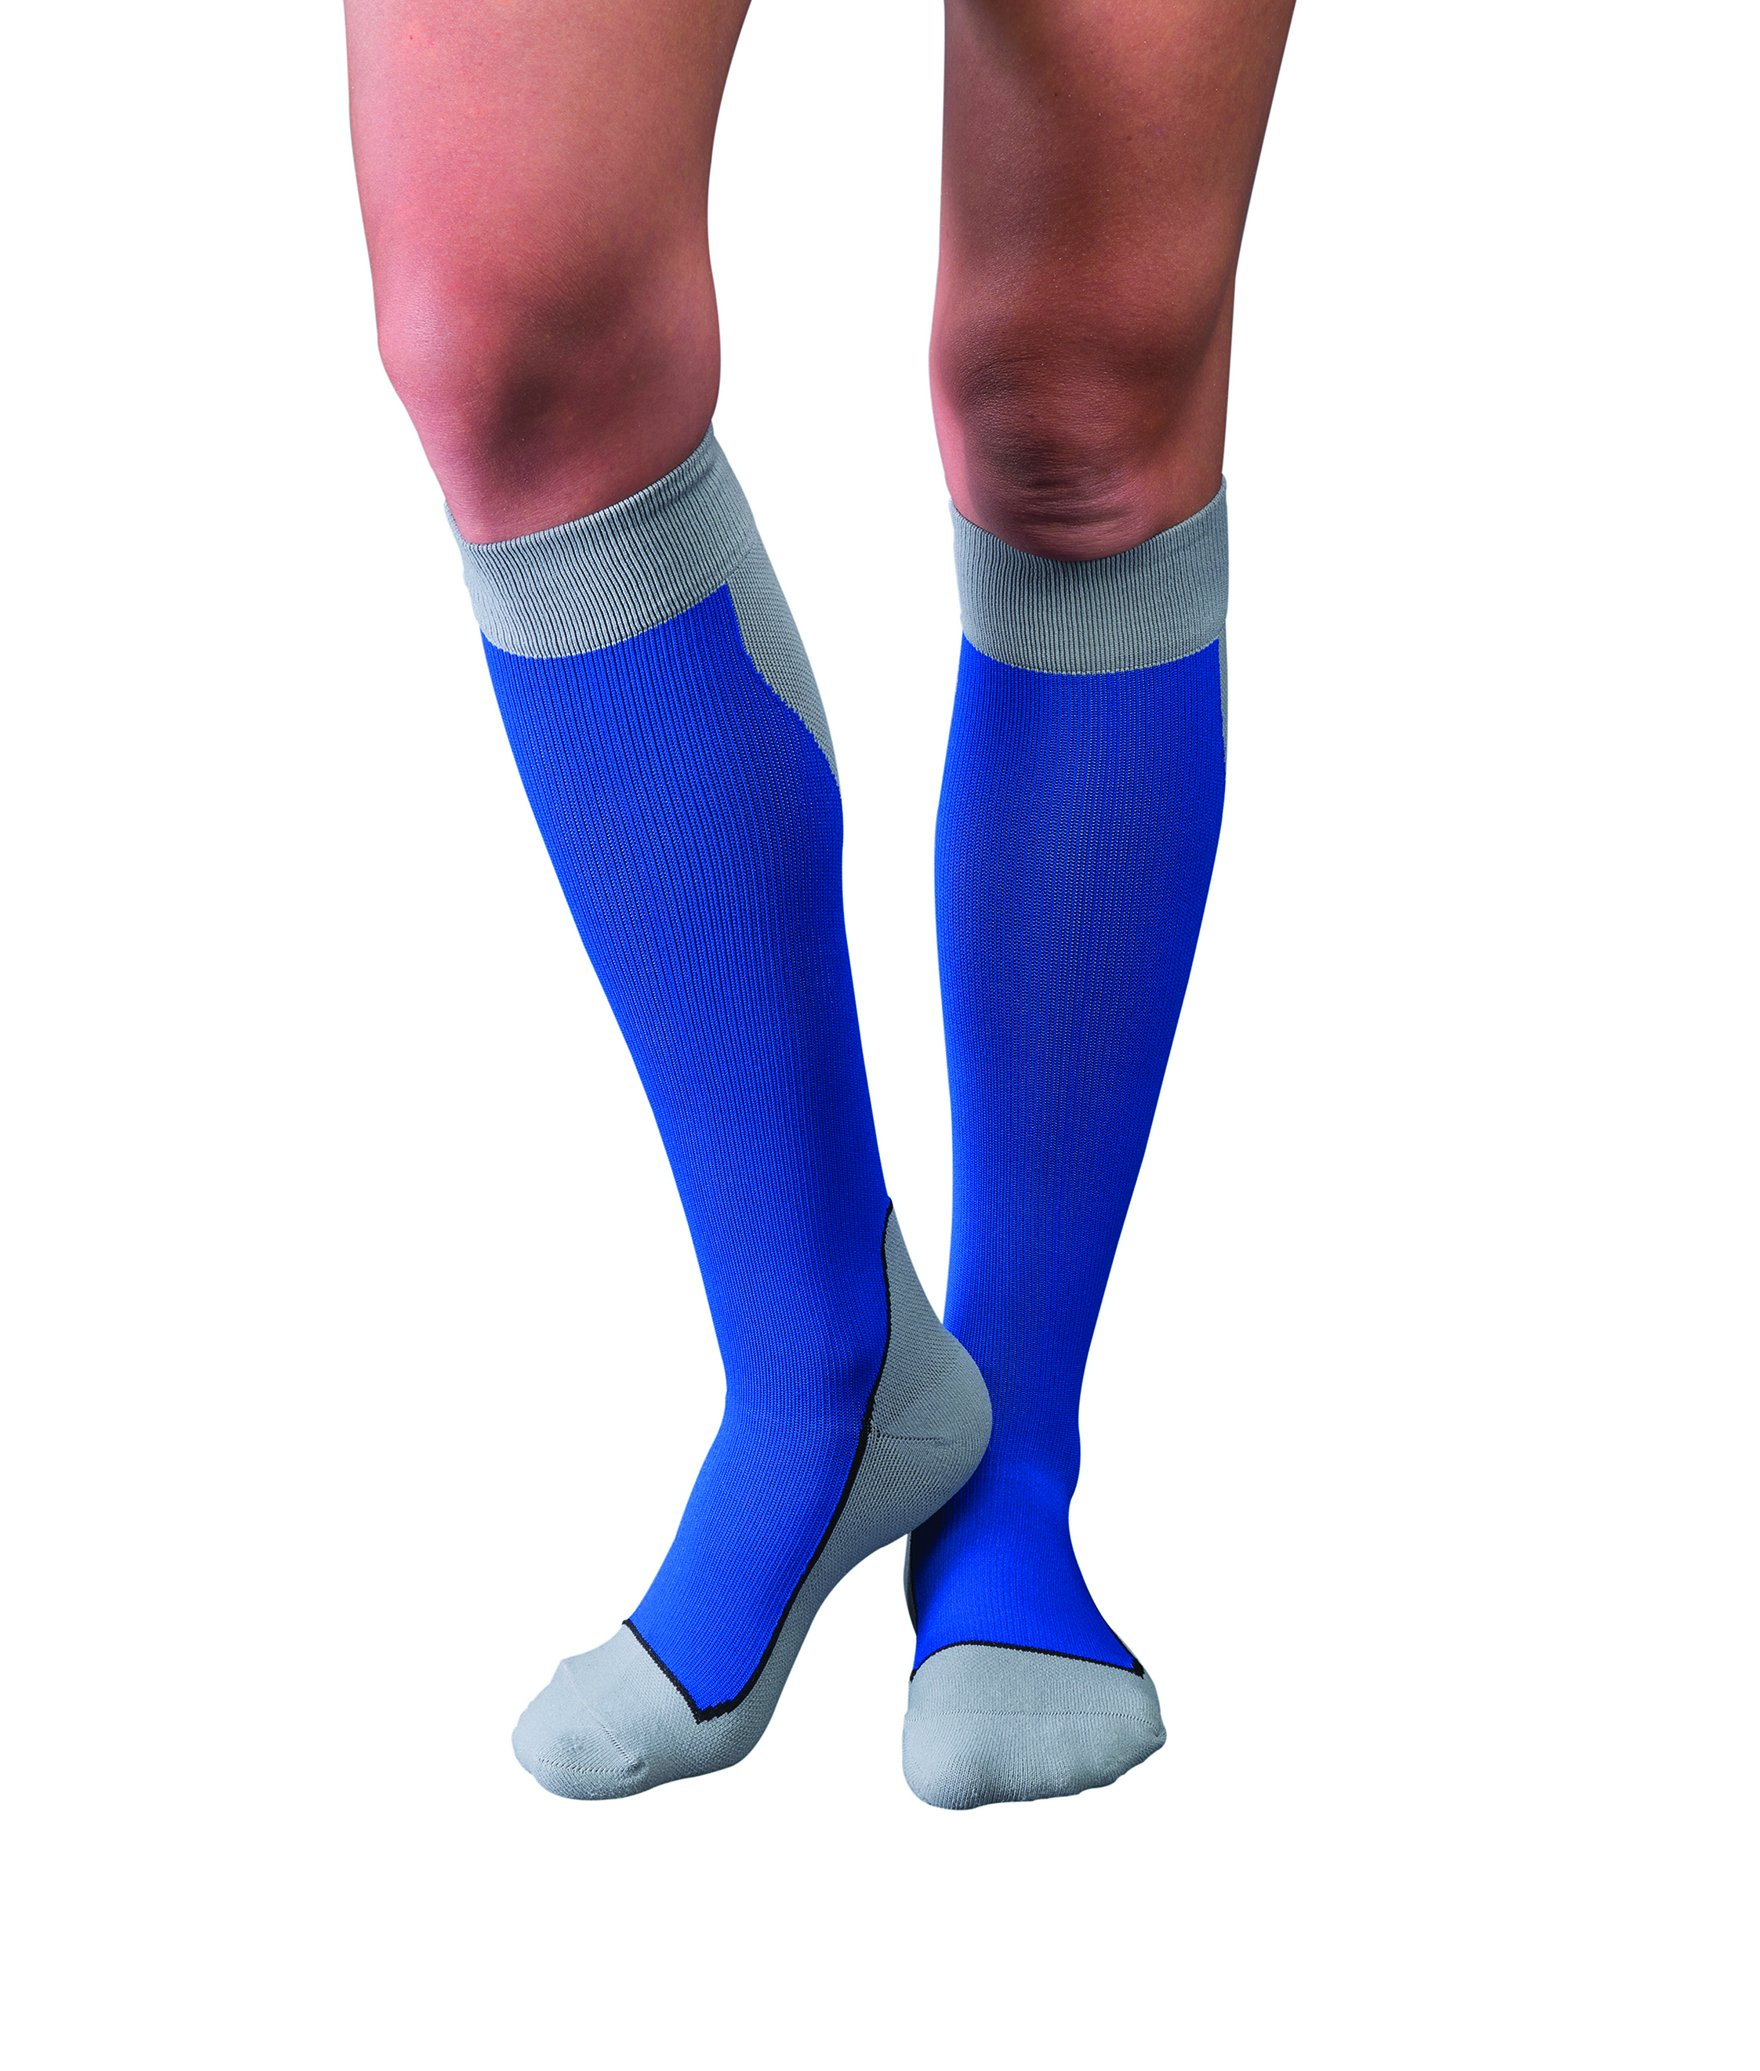 JOBST Sport Knee High 15-20 mmHg Compression Socks, Royal Blue/Grey,